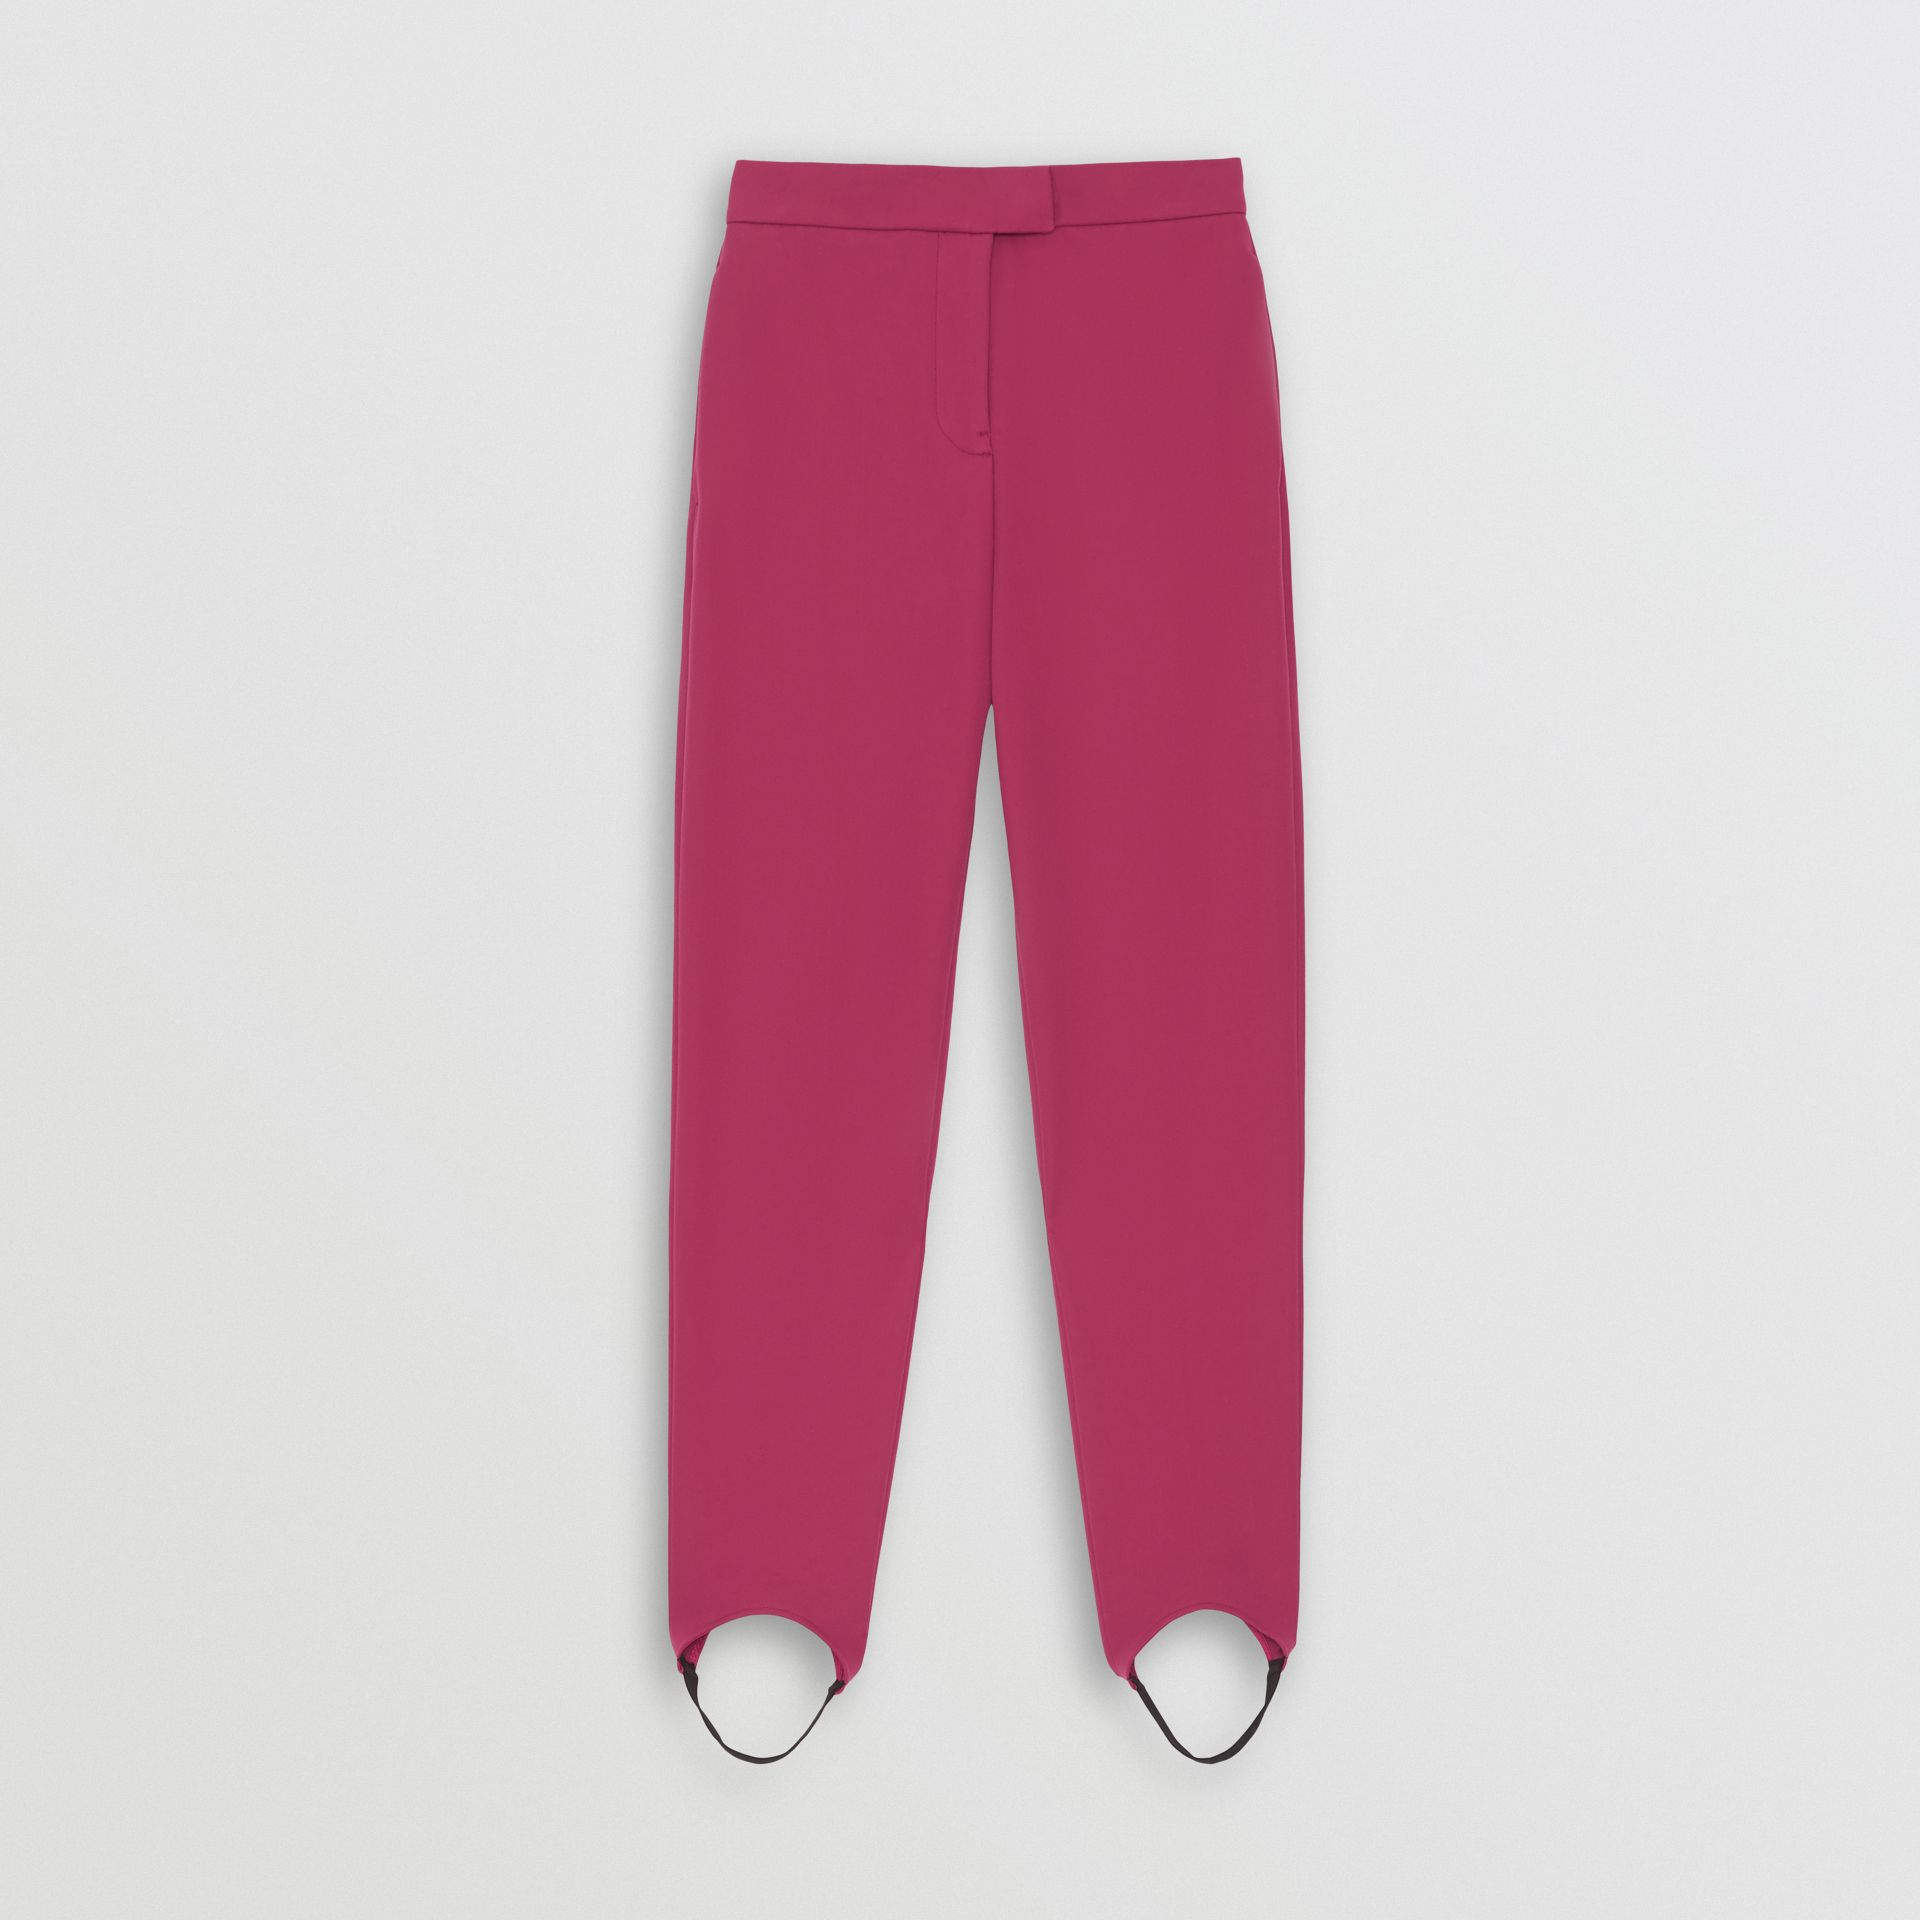 Long Cotton Blend Tailored Jodhpurs in Plum Pink - Women | Burberry - gallery image 3